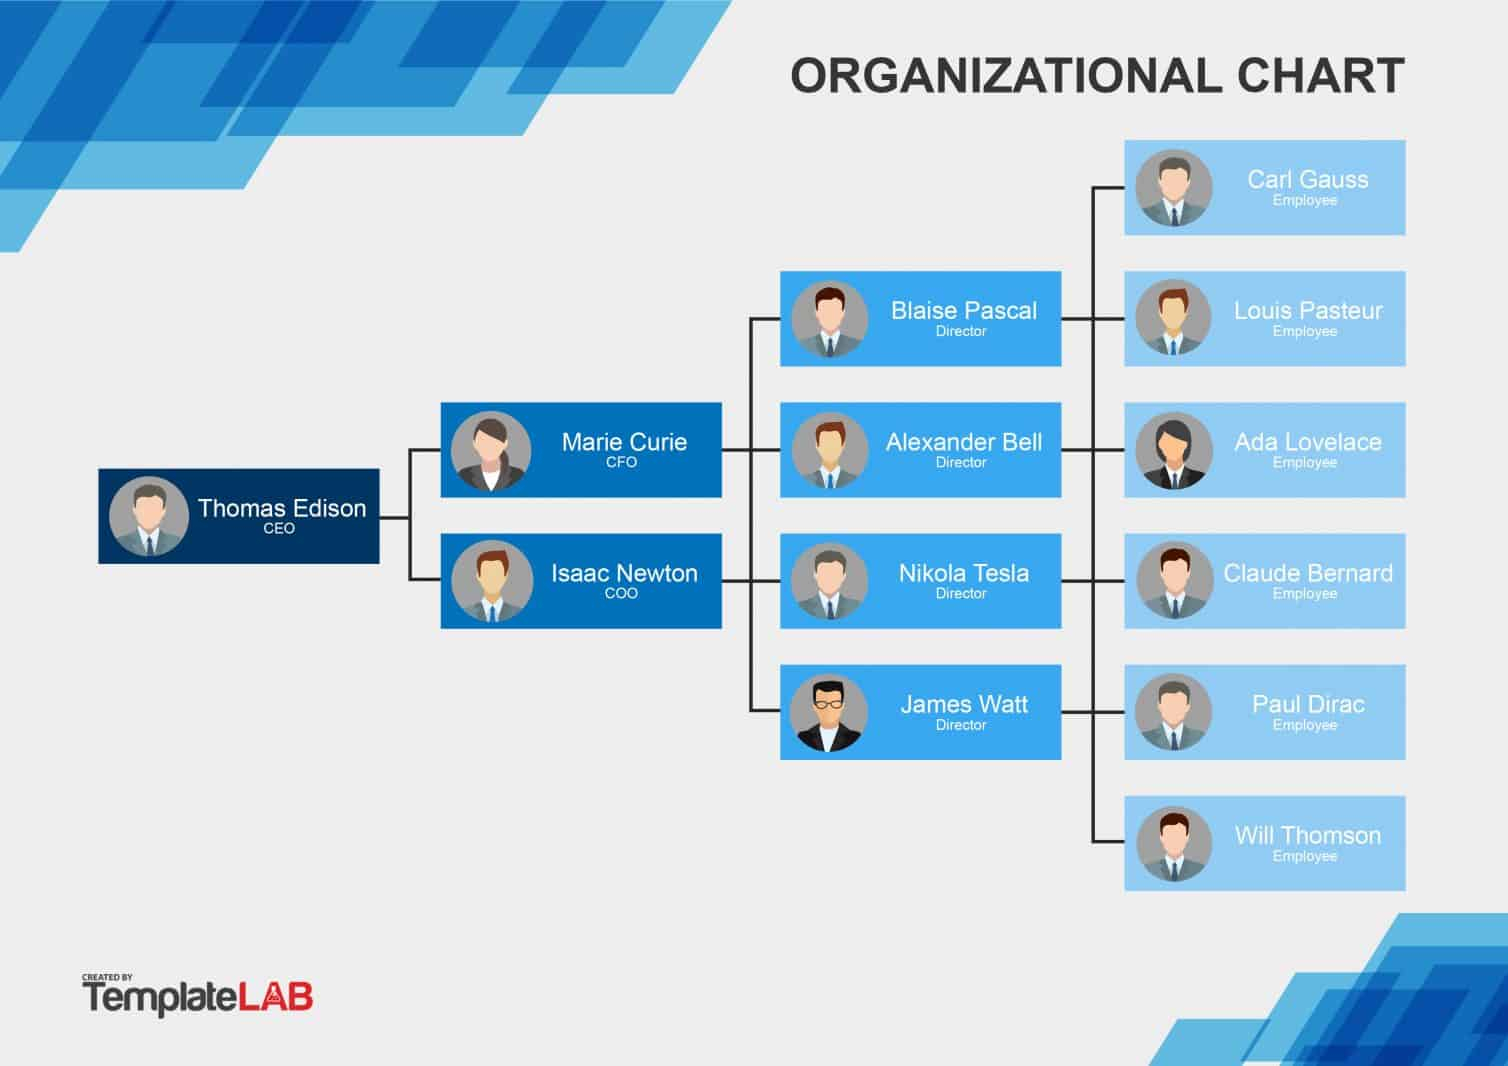 40 Organizational Chart Templates (Word, Excel, Powerpoint) Inside Word Org Chart Template